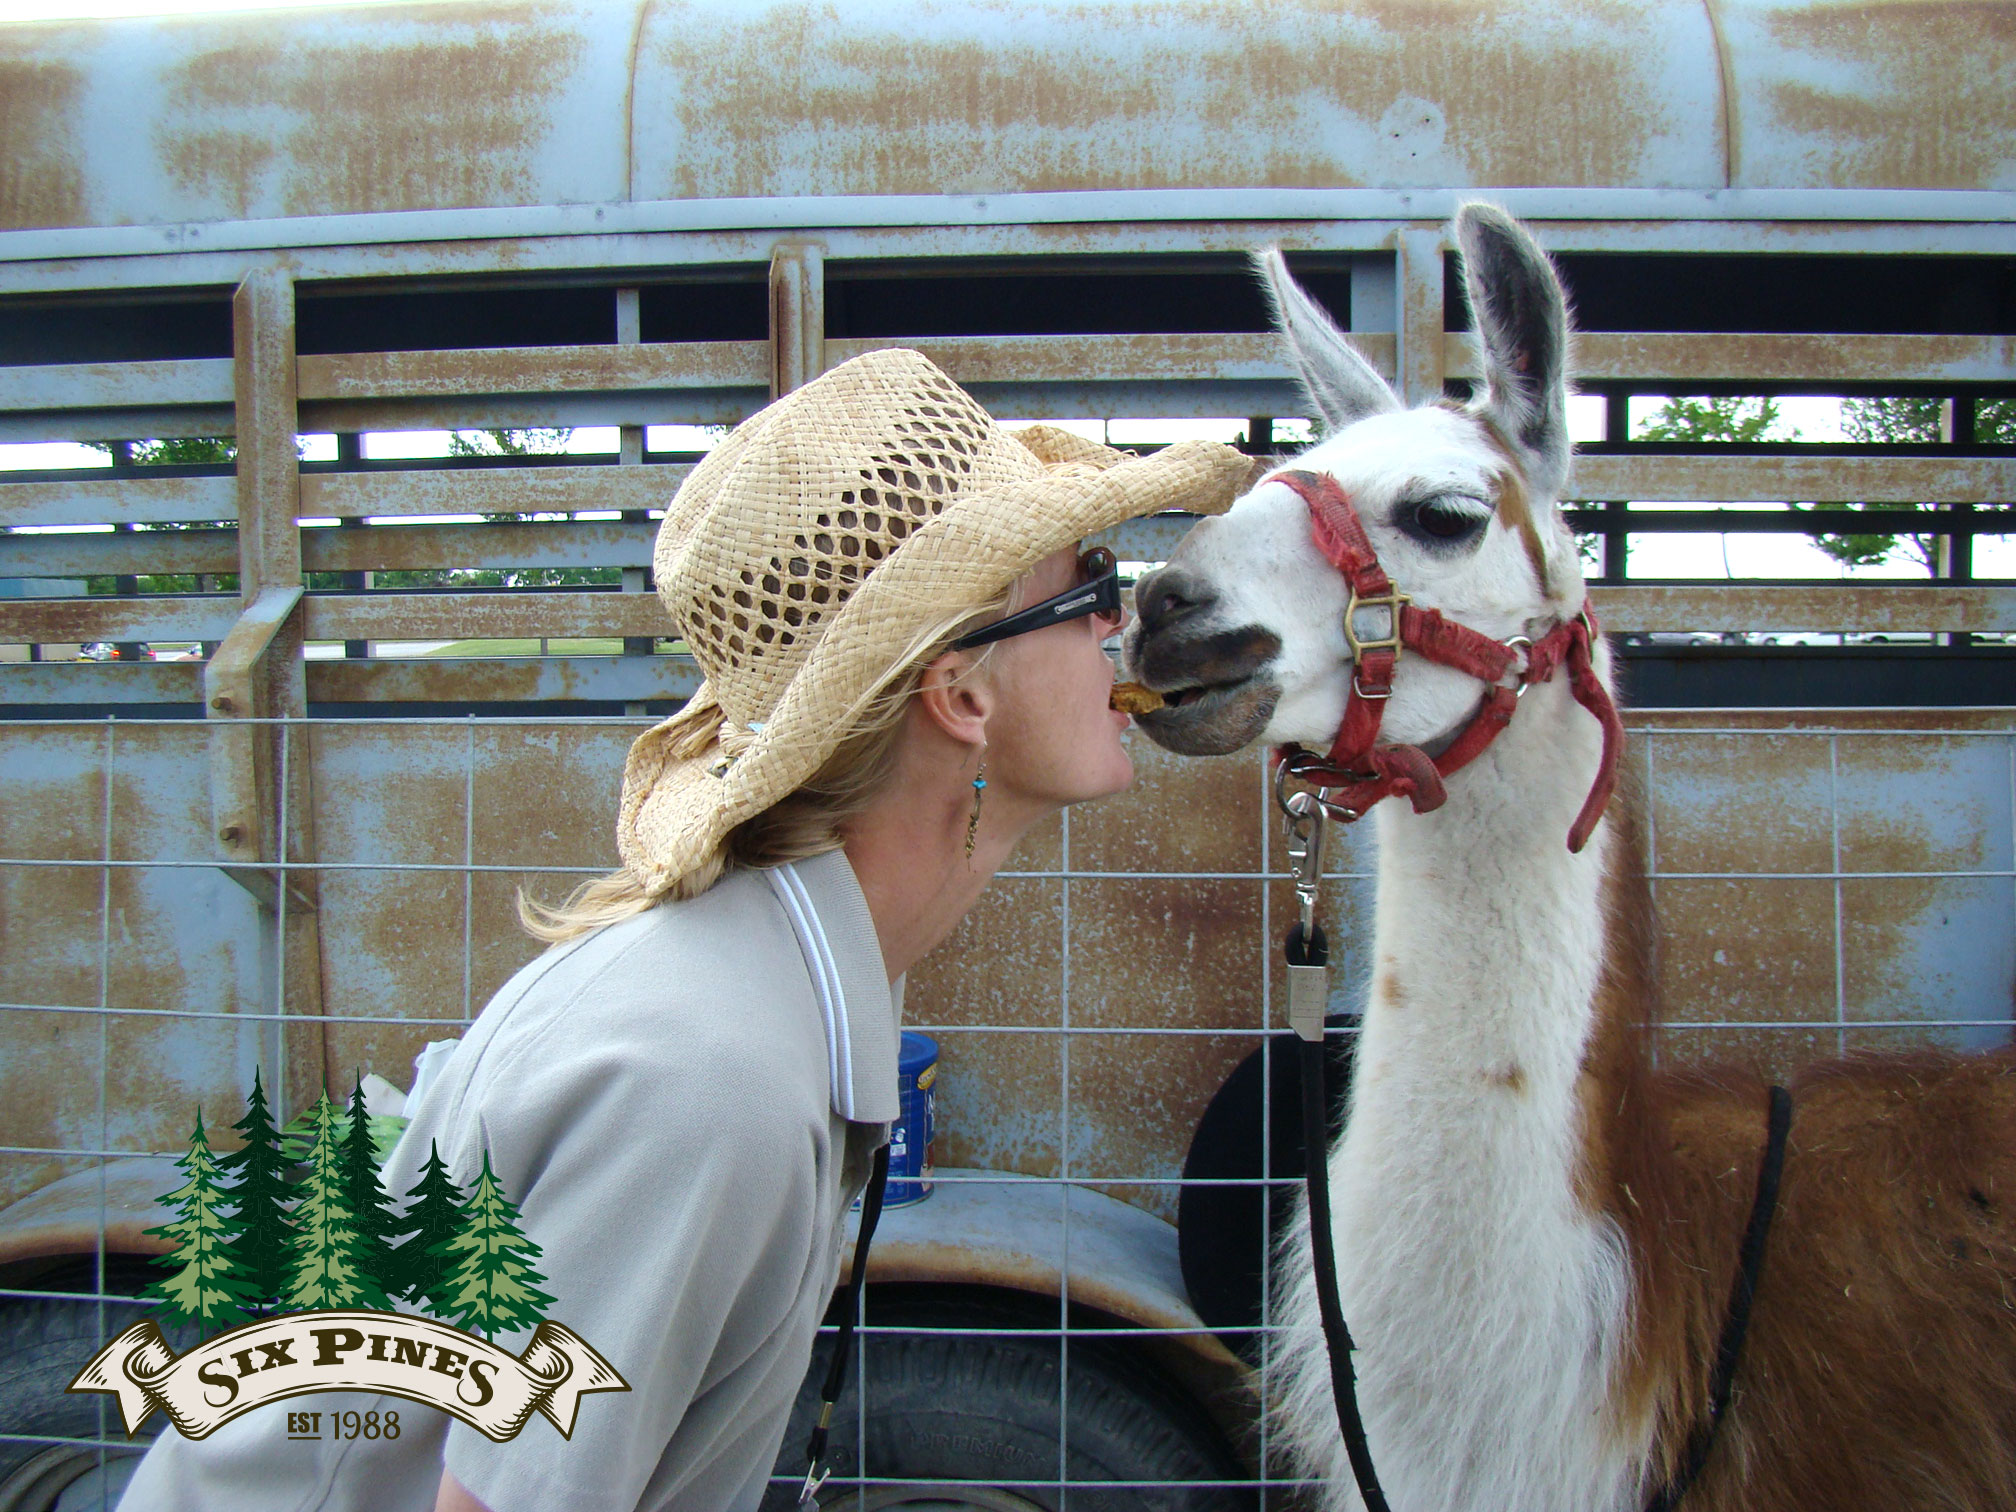 Six Pines Petting Farm